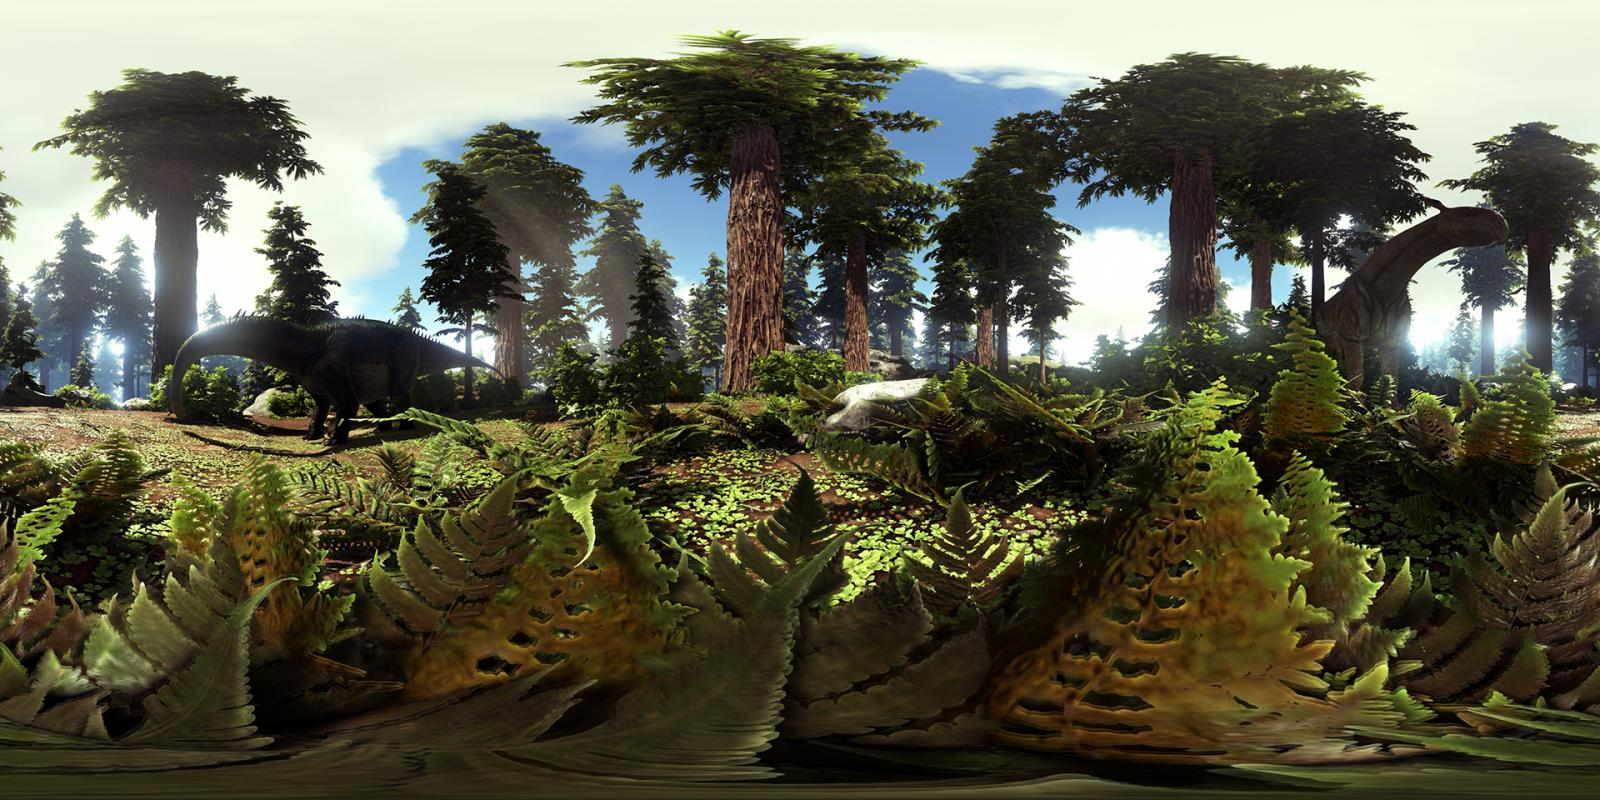 large.5903f6015df67_FataL1ty-Clearing-Panoramic360Stereoscopic3D.jpg